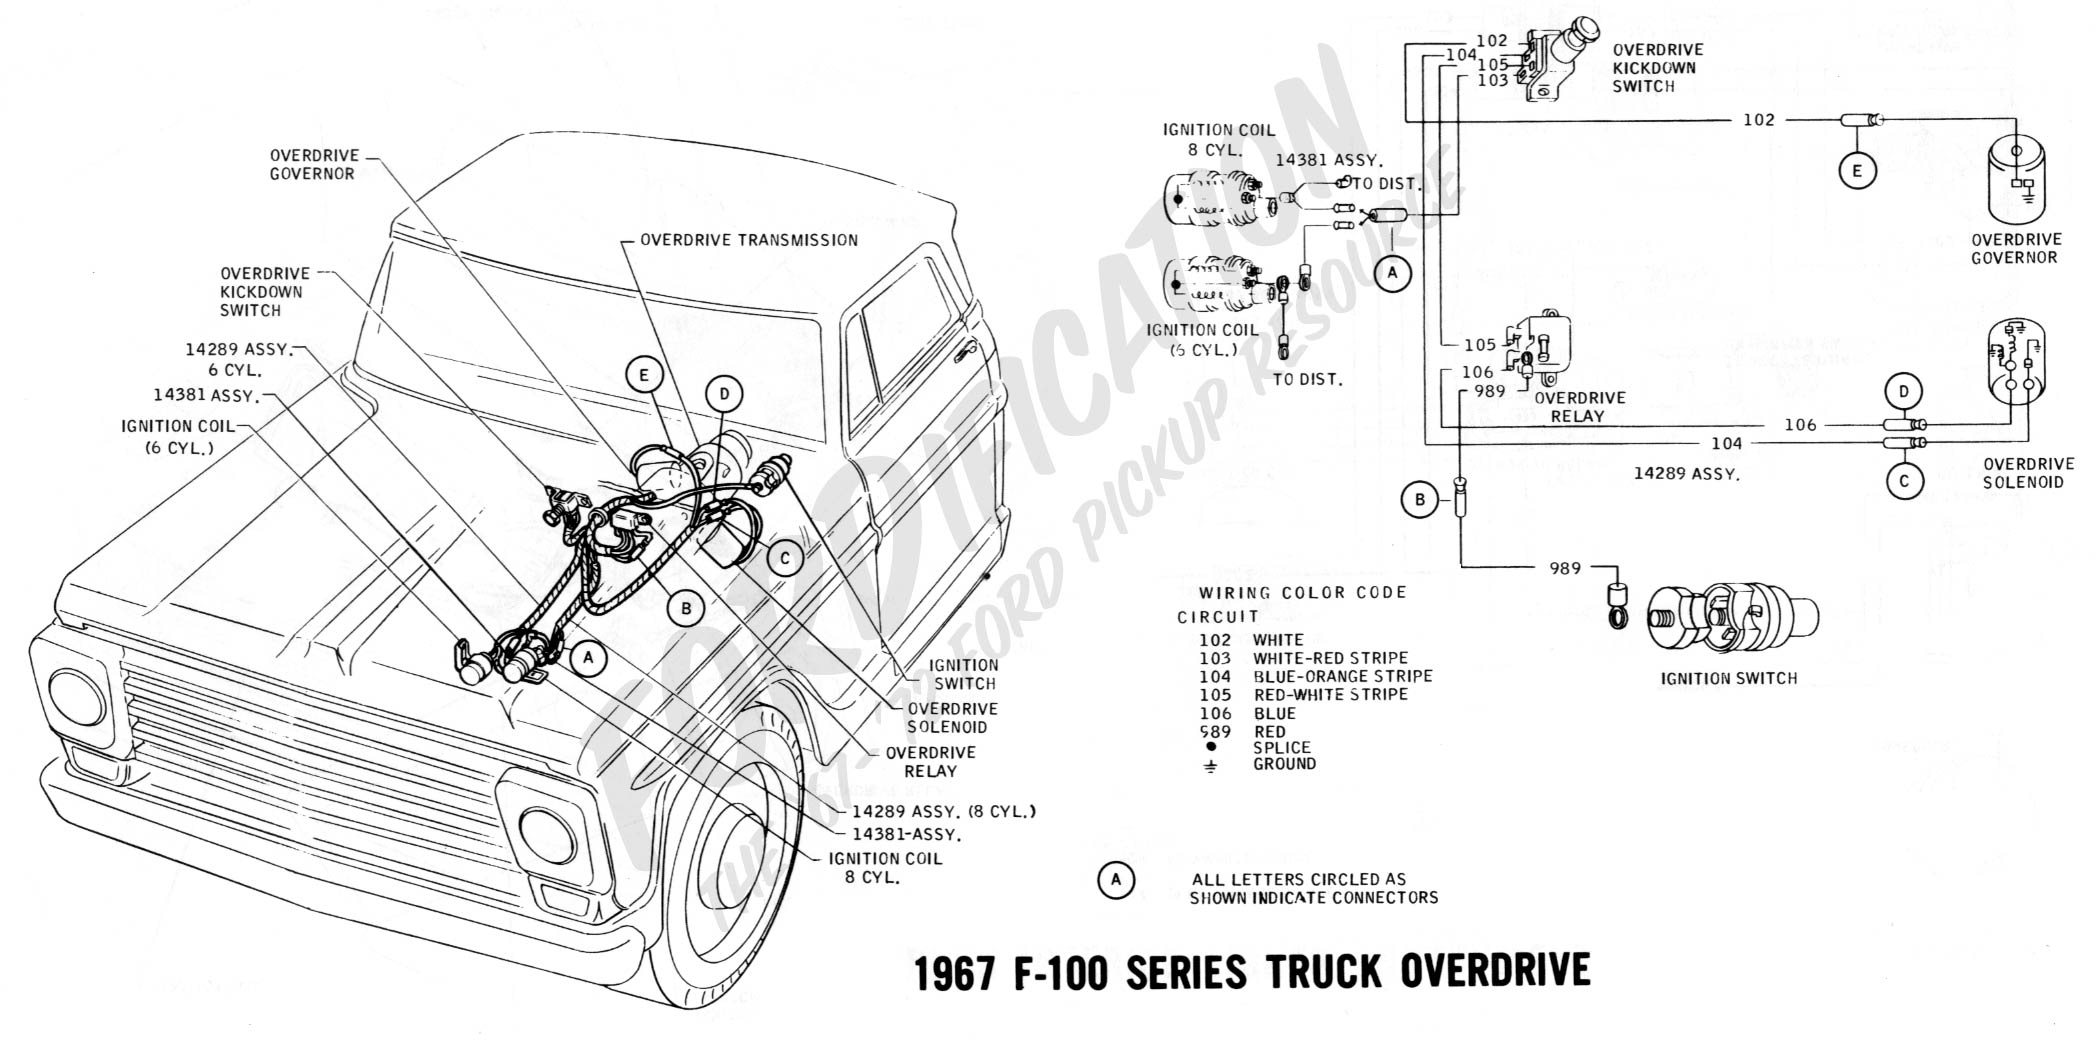 72 Chevelle Fuel Line Diagram also 8964R09 PARKING BRAKE additionally 1968 Mustang Wiring Diagram Vacuum Schematics moreover 43 Zaz additionally Schematics h. on 1967 mustang wiring and vacuum diagrams